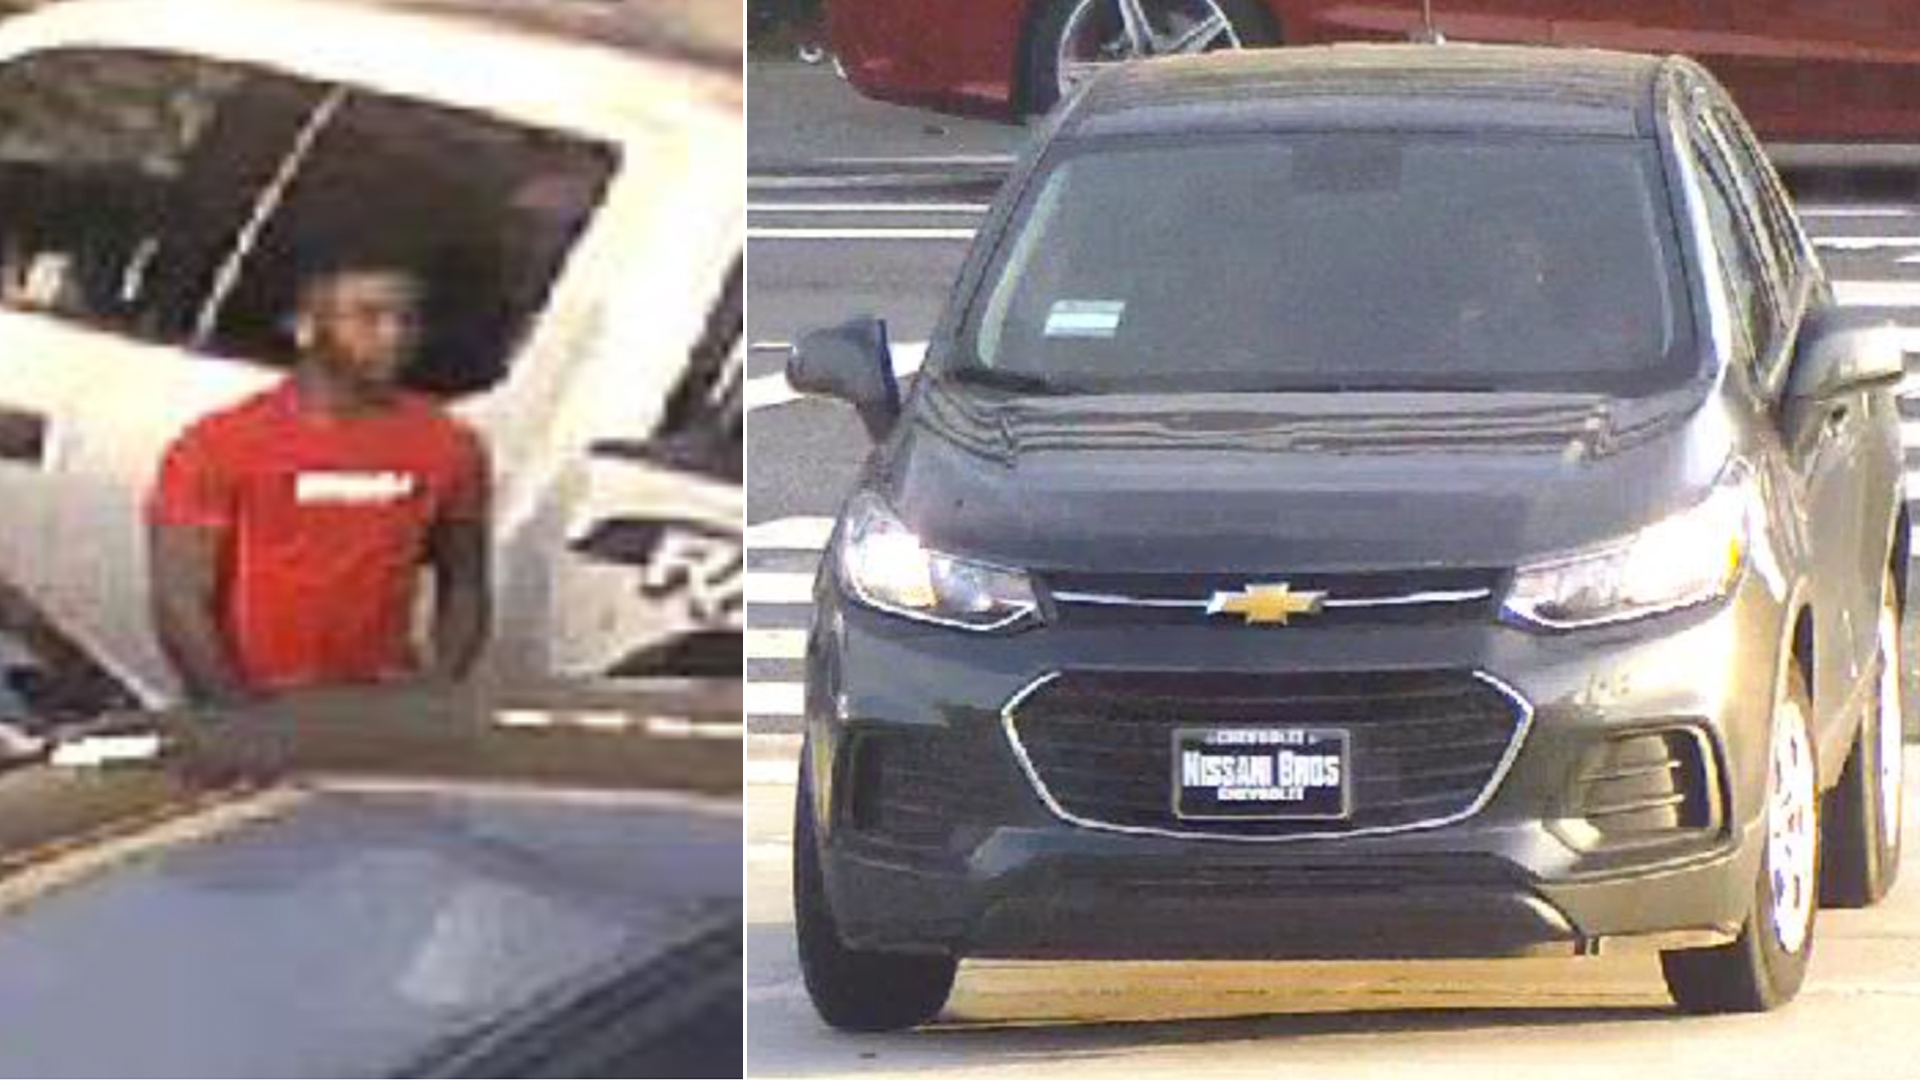 El Segundo police released these images of a vehicle and a man they believed to be involved in an armed robbery on Nov. 18, 2018.